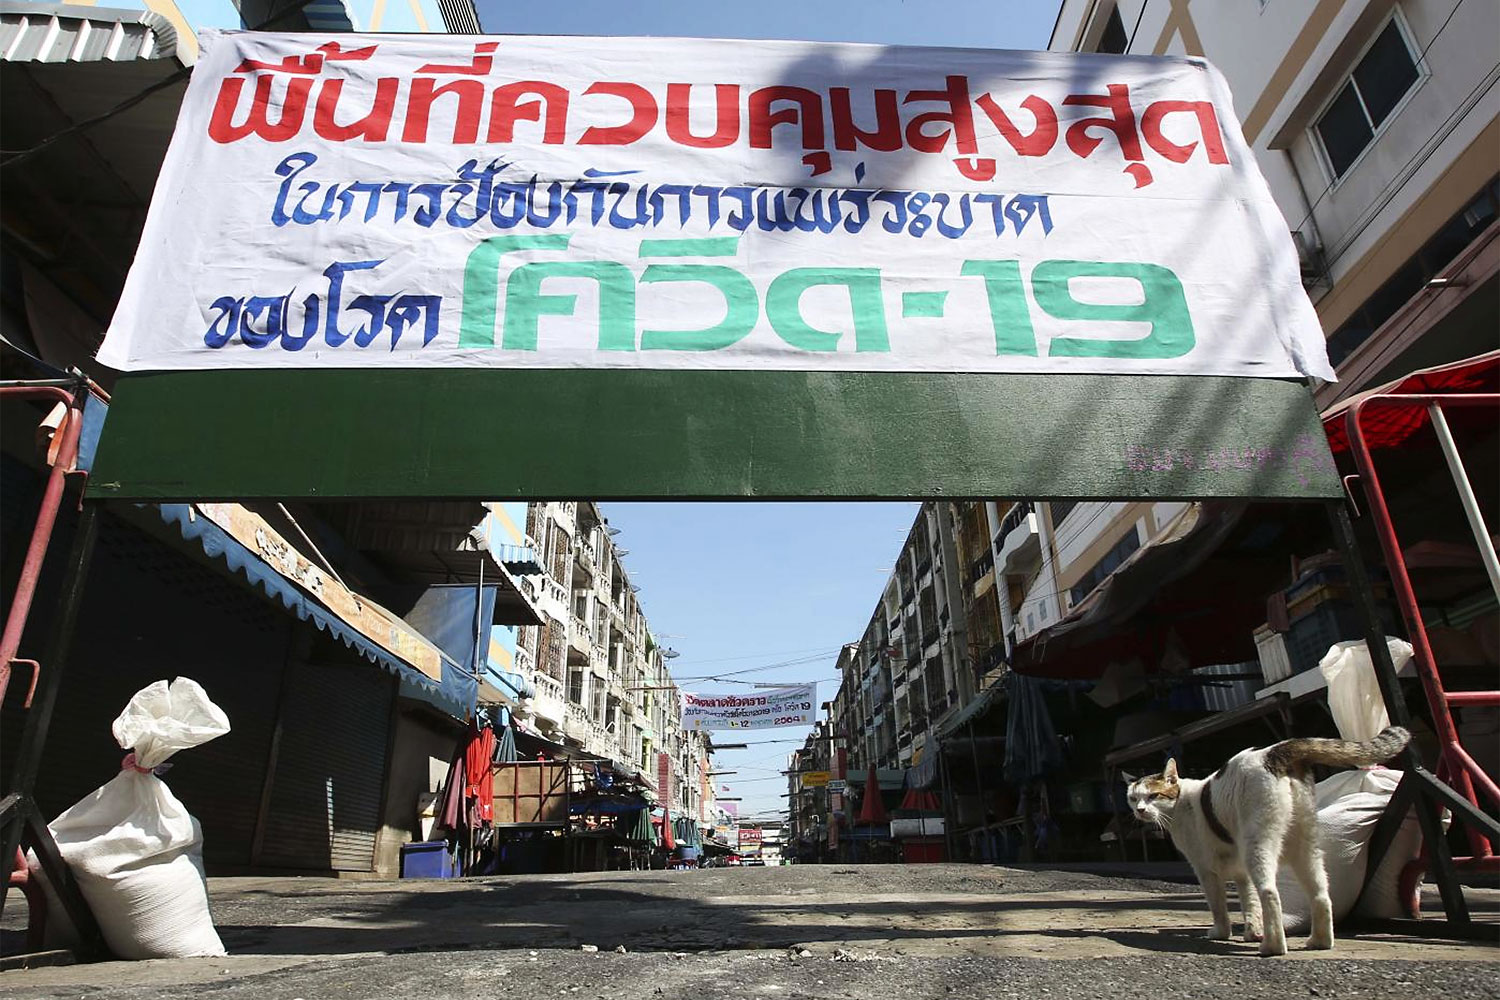 Bang Bua Thong Market is eerily quiet on Jan 3 after Nonthaburi authorities ordered its closure to curb Covid-19.(Photo: Pattarapong Chatpattarasill)